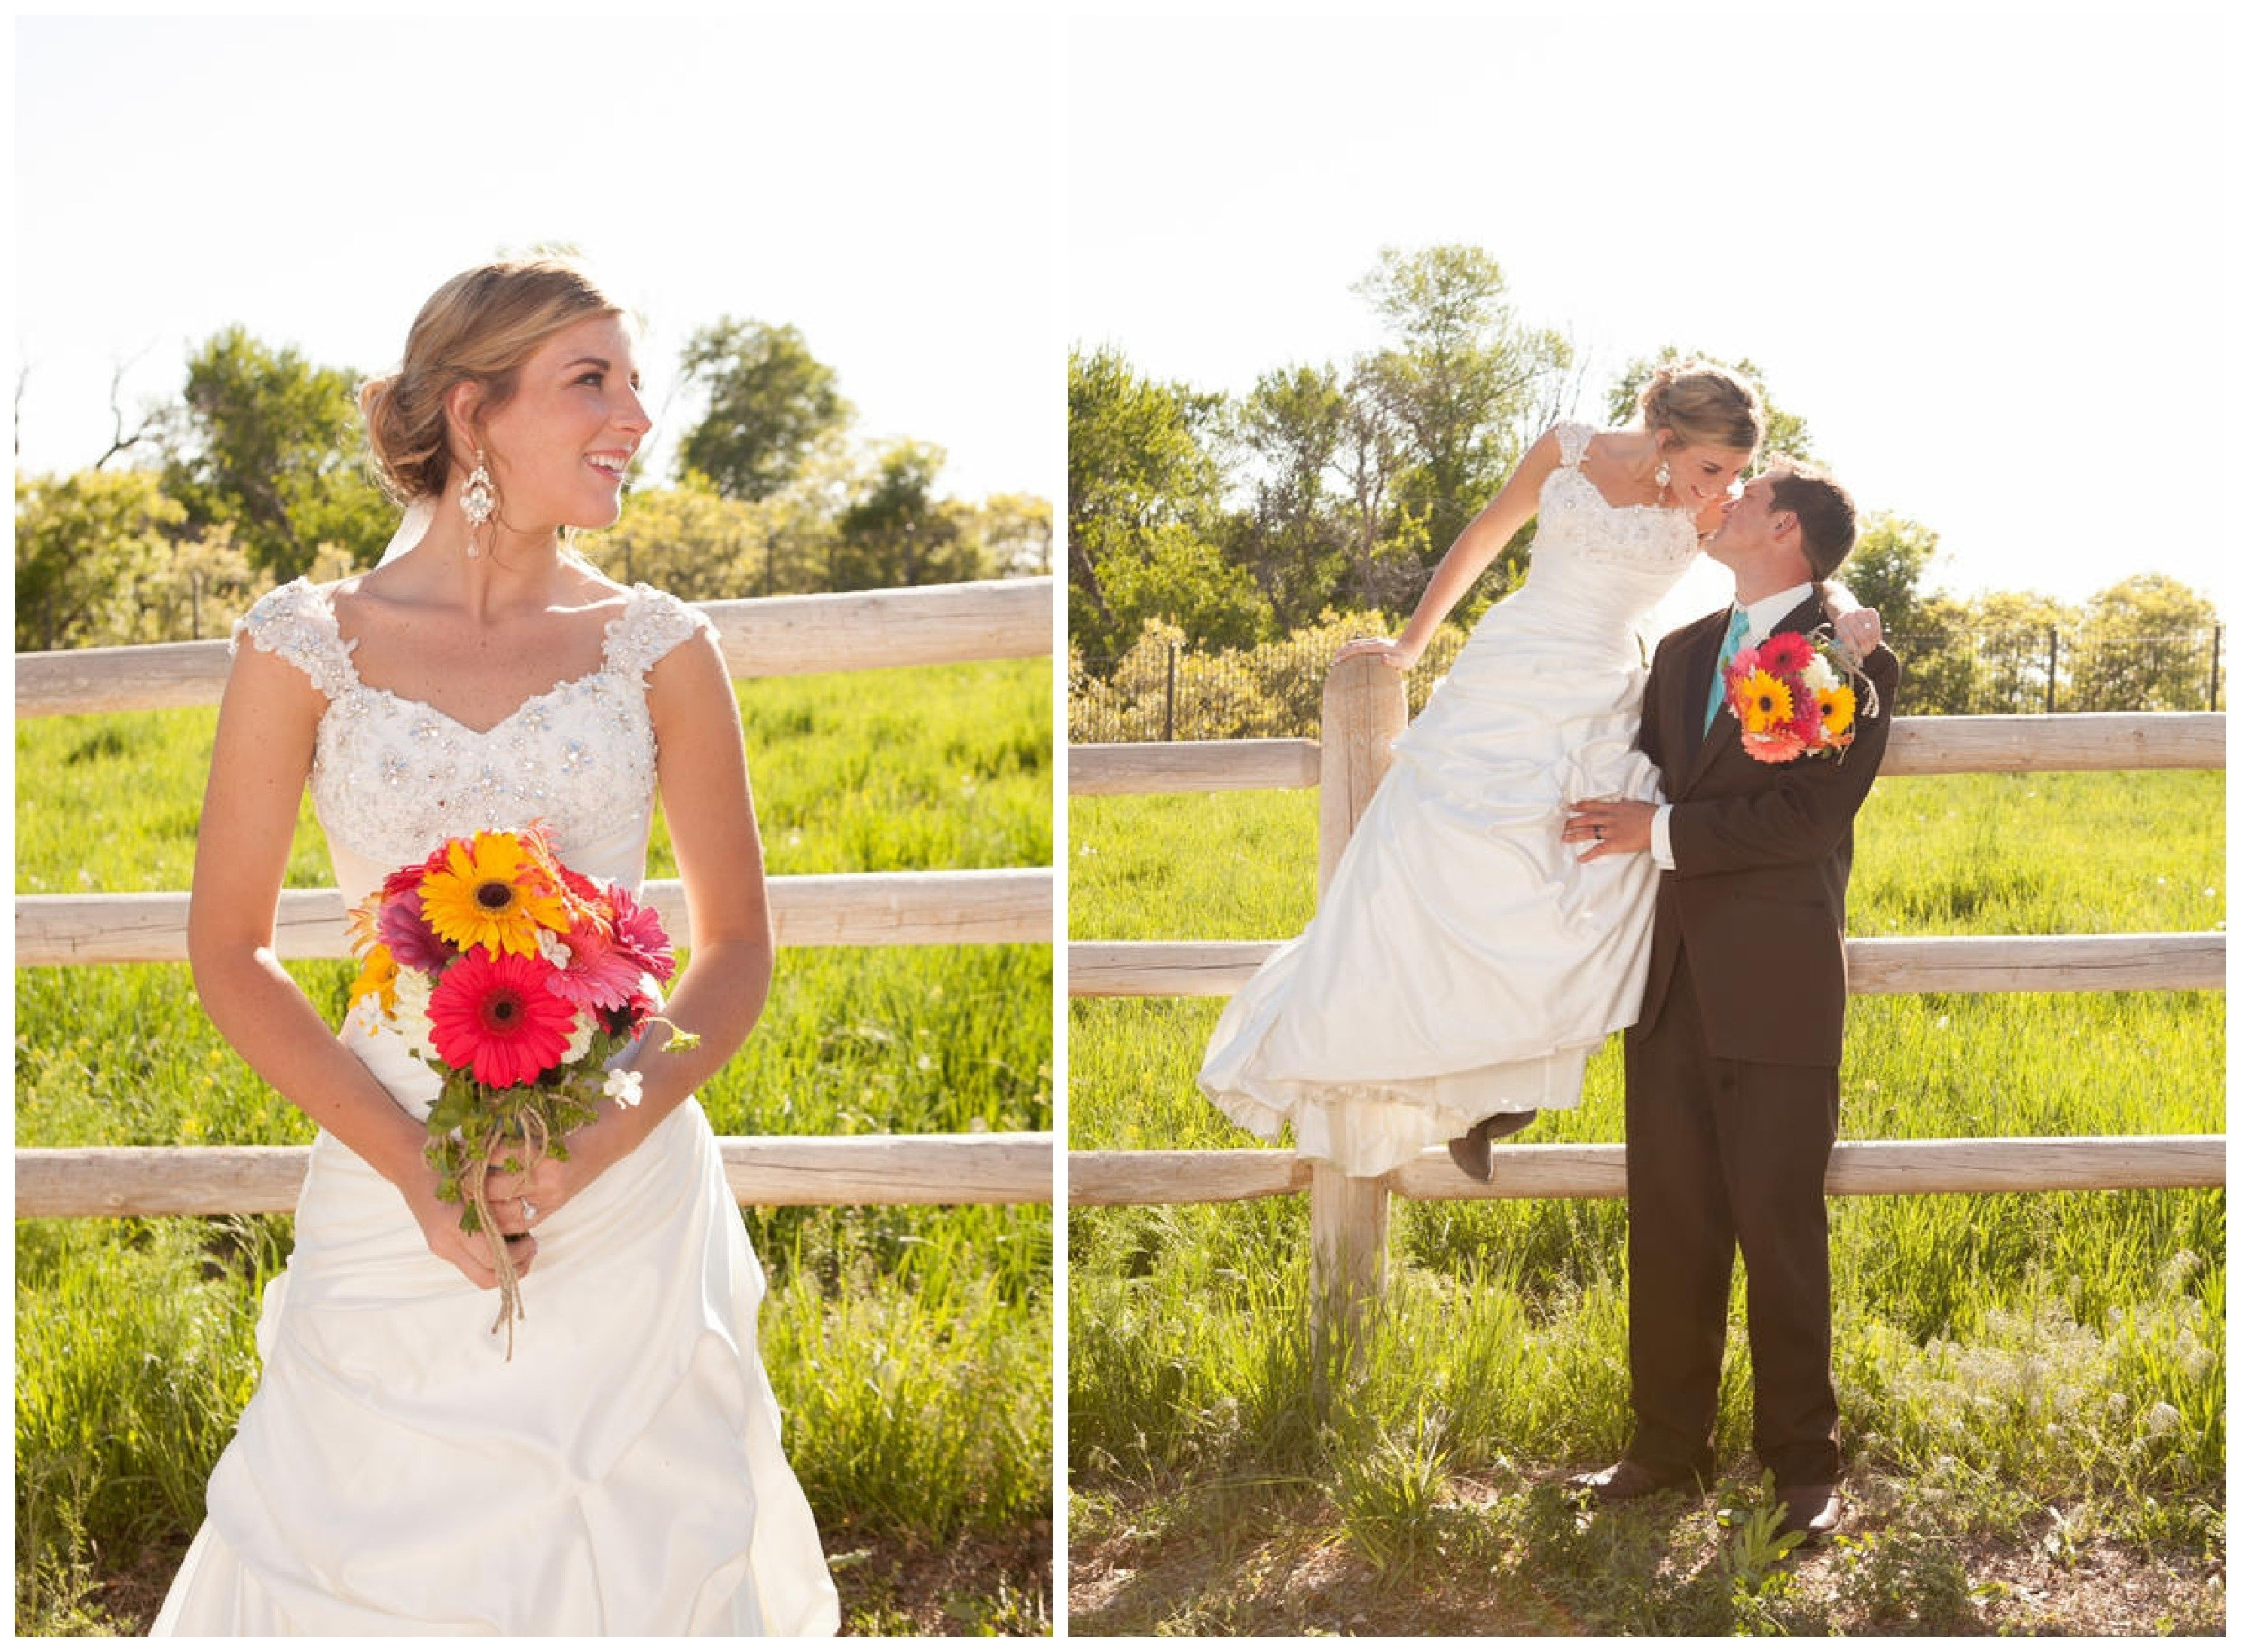 10 Fabulous Wedding Photo Ideas Bride And Groom